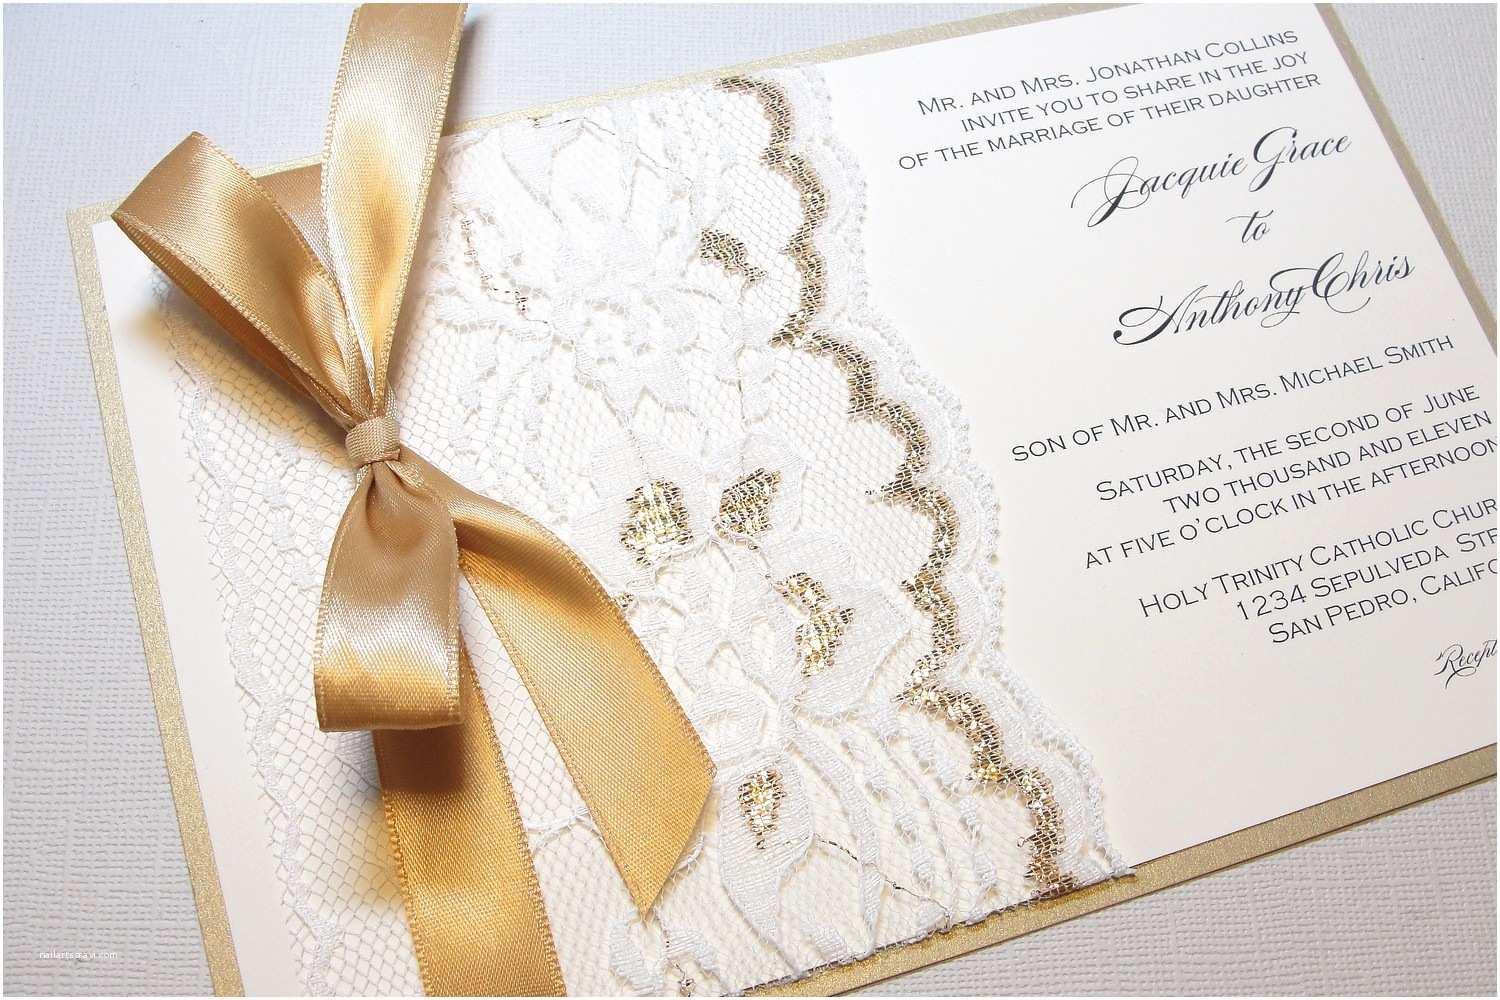 Wedding Invitation Stationery Happiness is A Mood Not A Destination August 2013